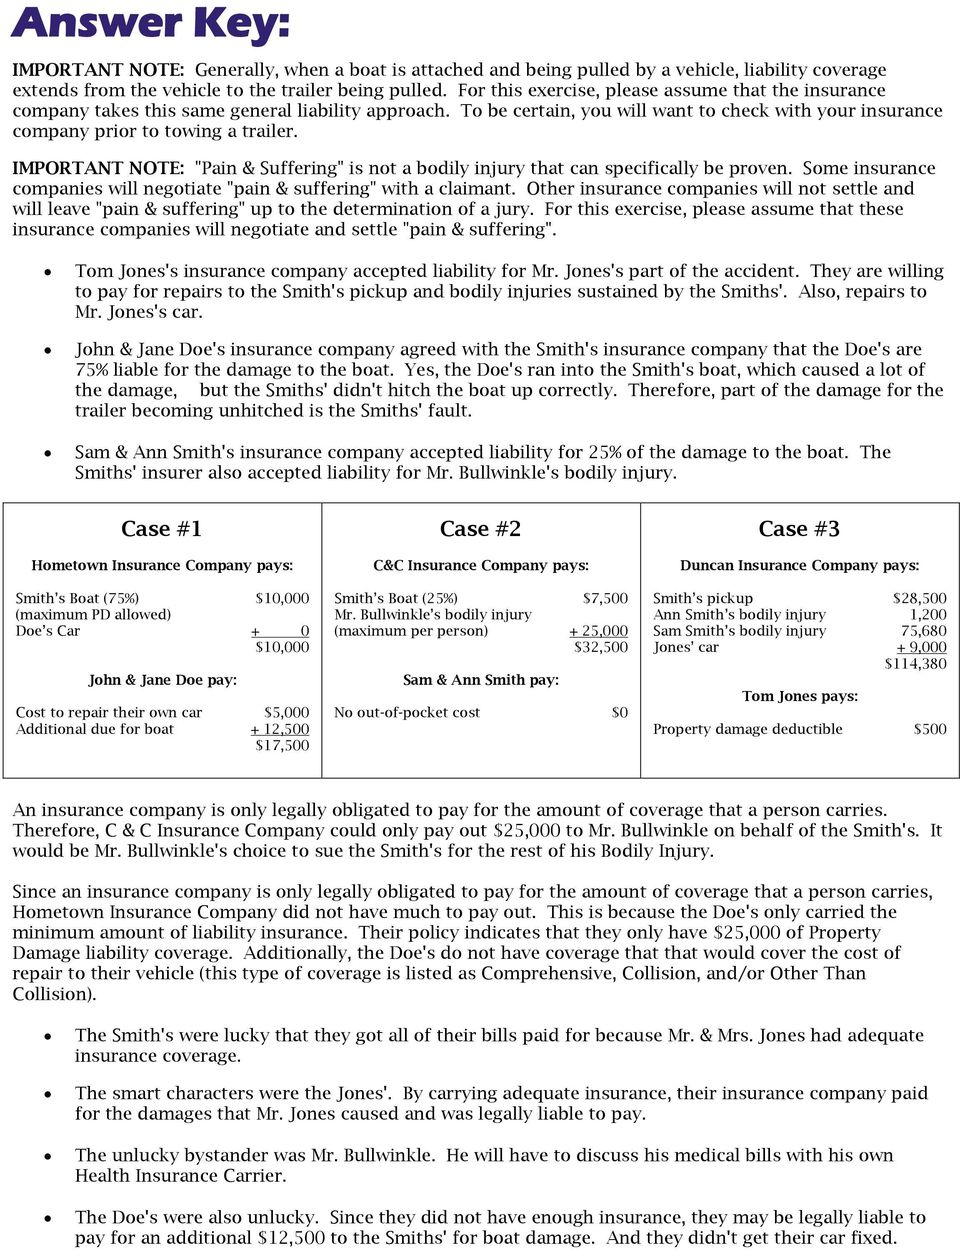 Auto Liability Limits Worksheet Chapter 9 Promotiontablecovers